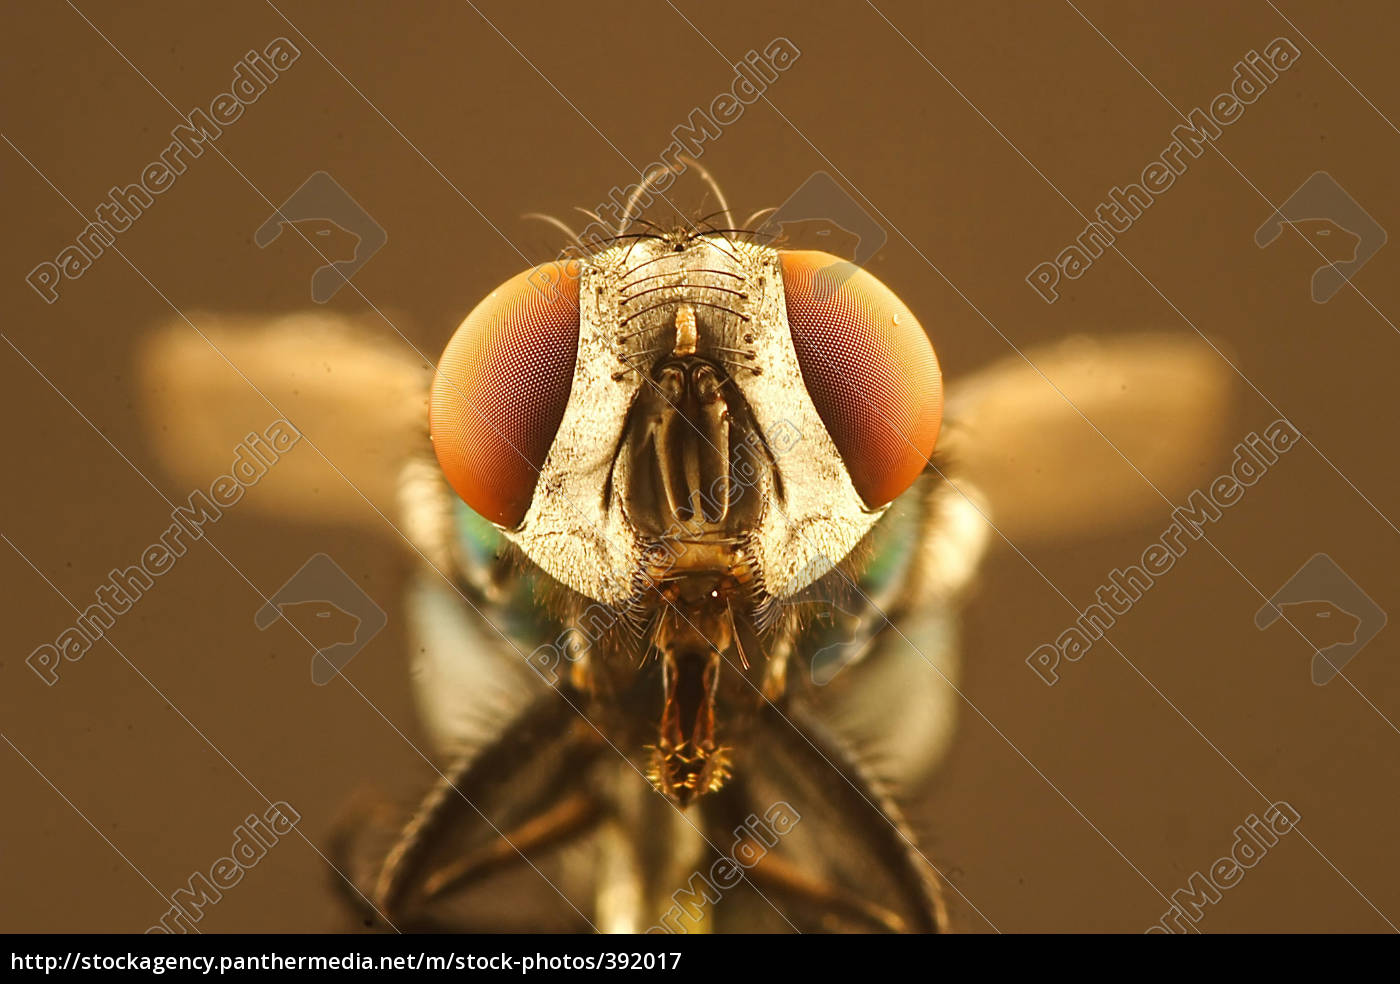 fly, with, gaping, feeding, tool - 392017